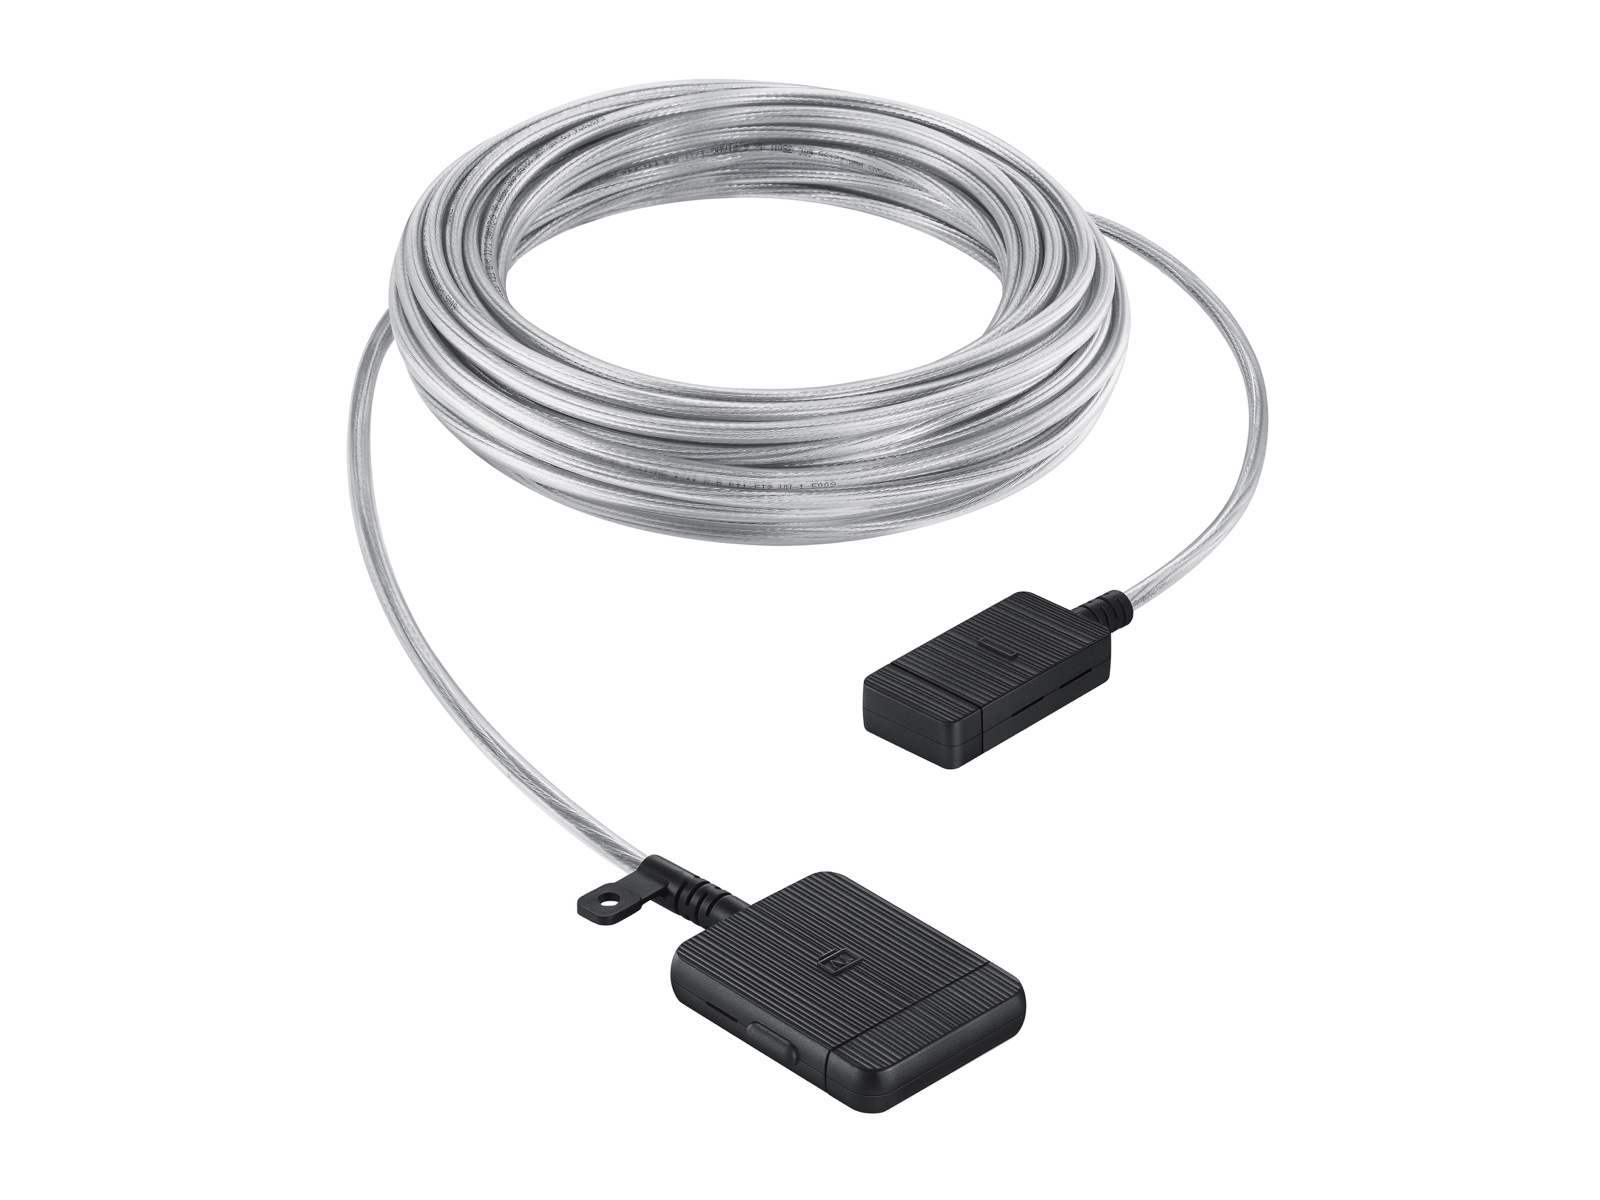 15m One Invisible Connection™ Cable for QLED 4K & 8K TVs (2019)